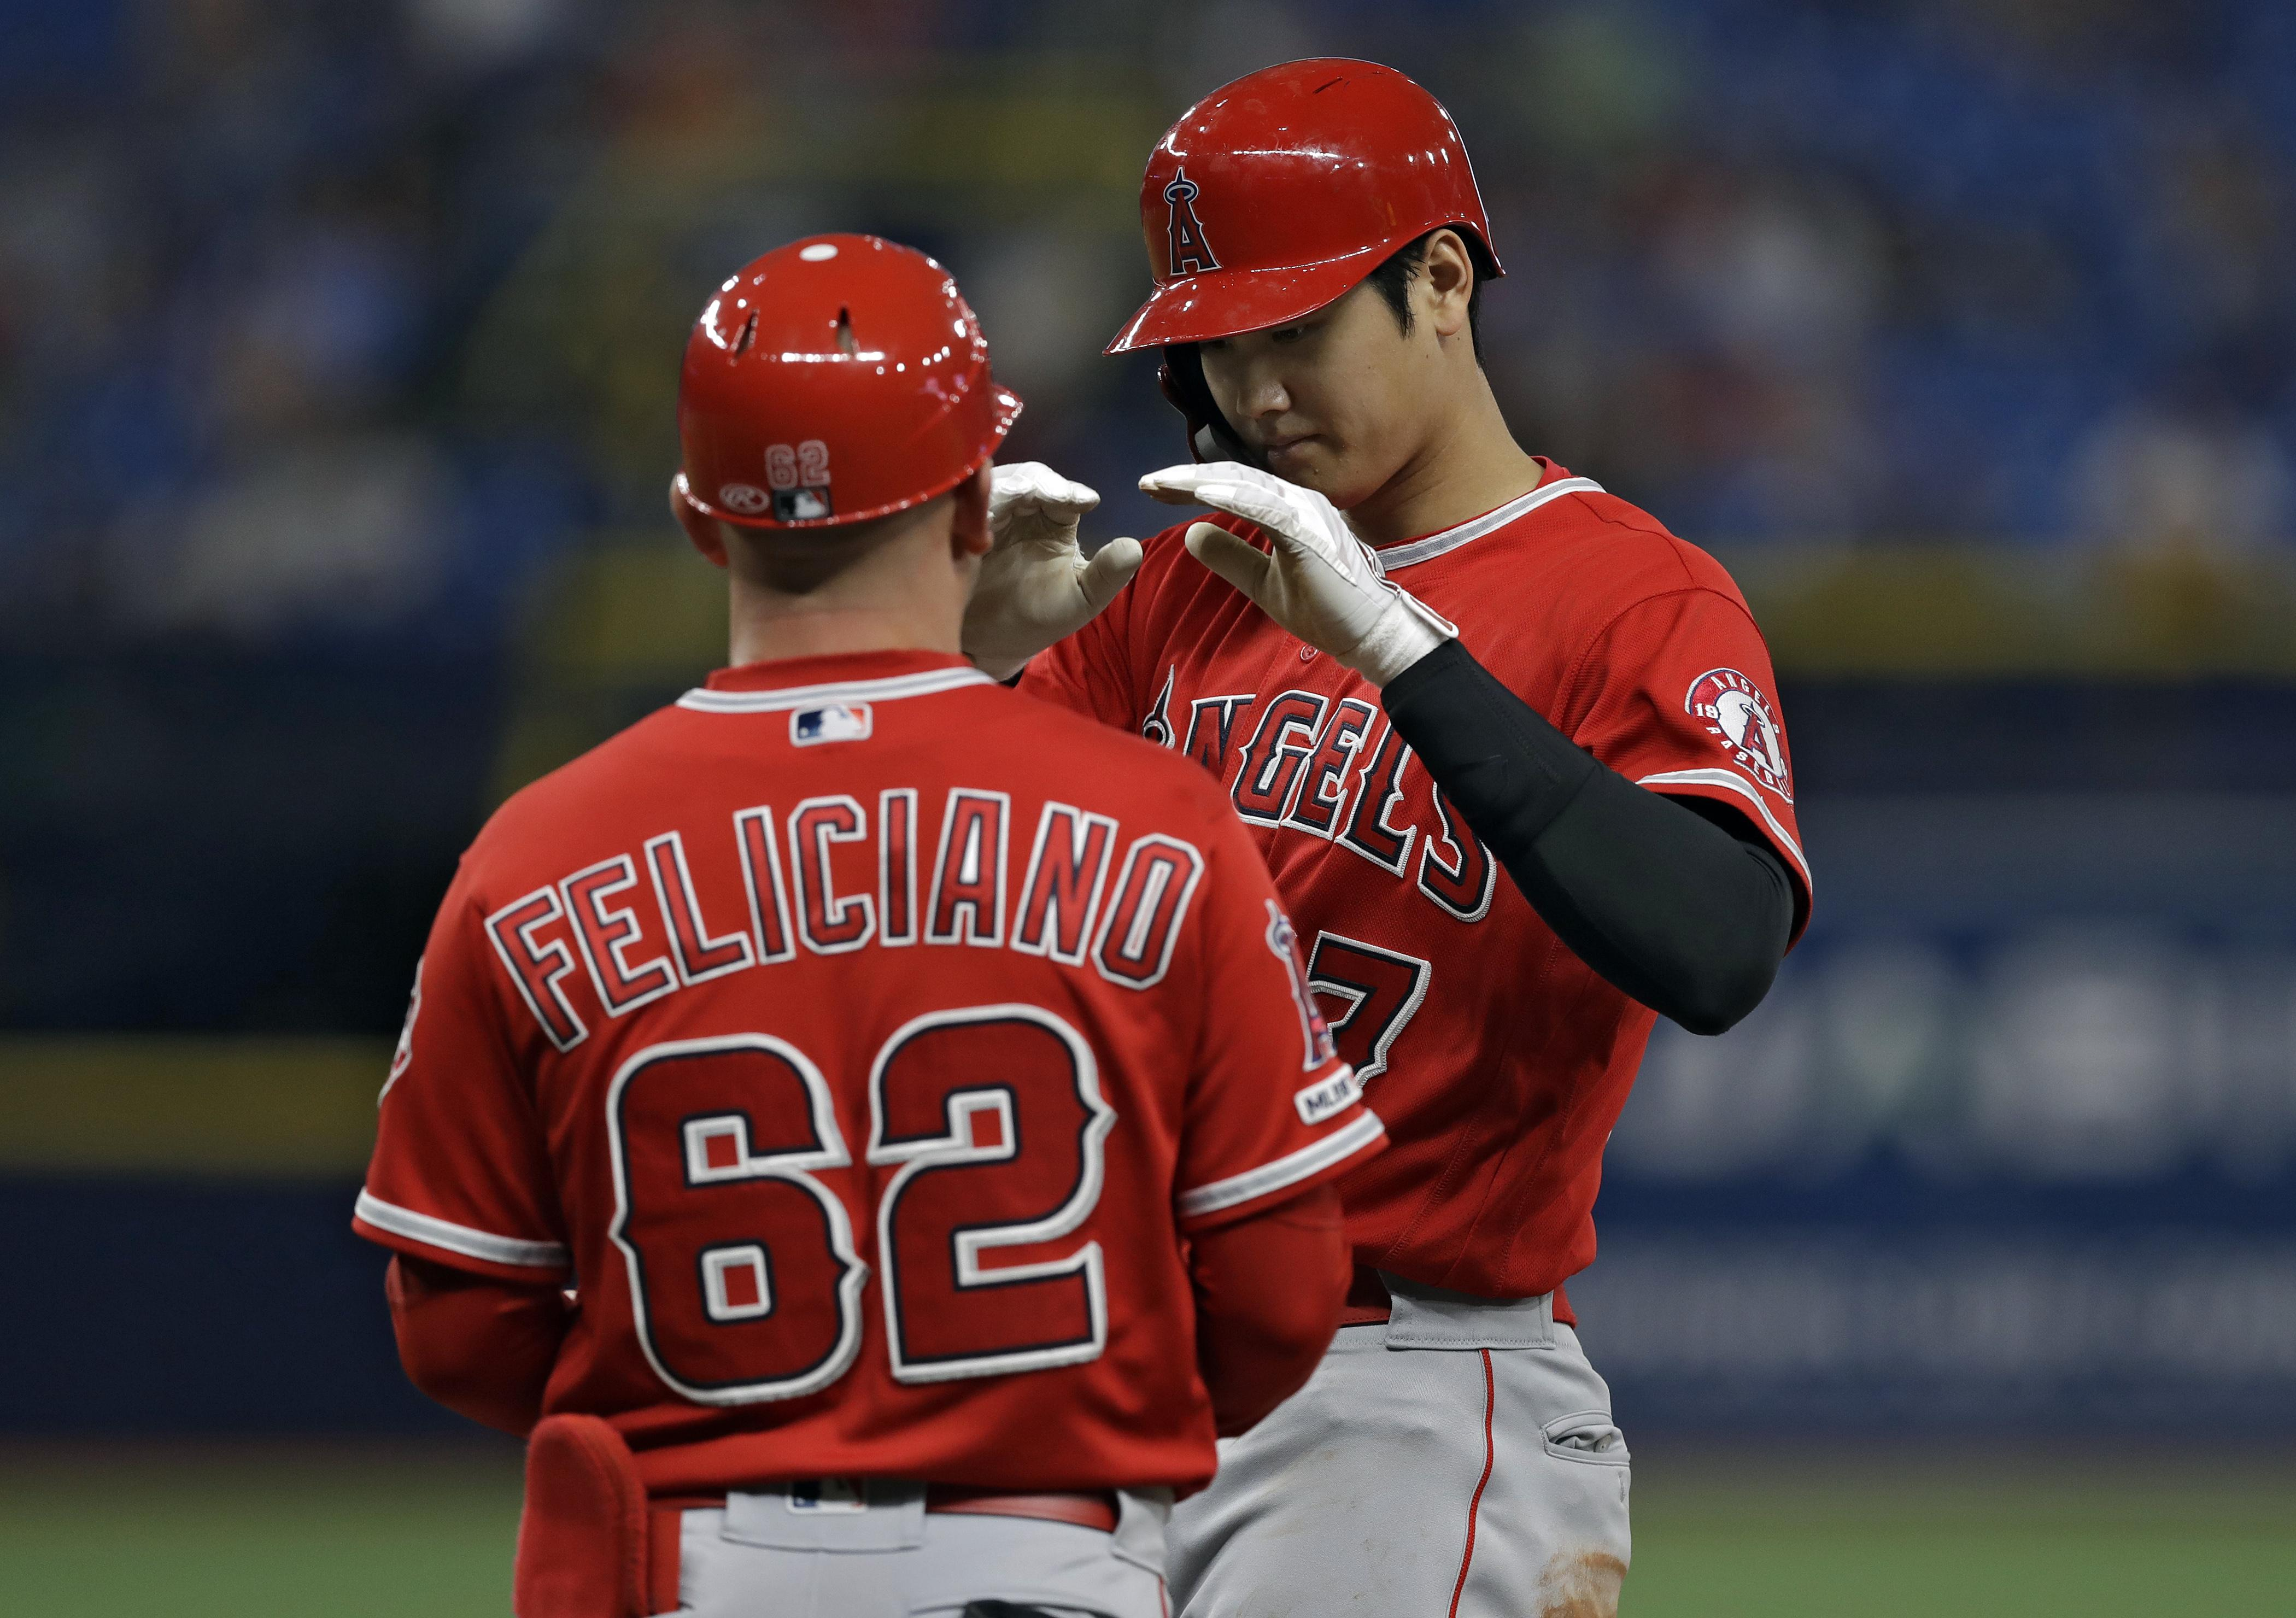 finest selection 66b7f 3e0f6 MLB roundup: Angels' Shohei Ohtani first Japanese player to ...